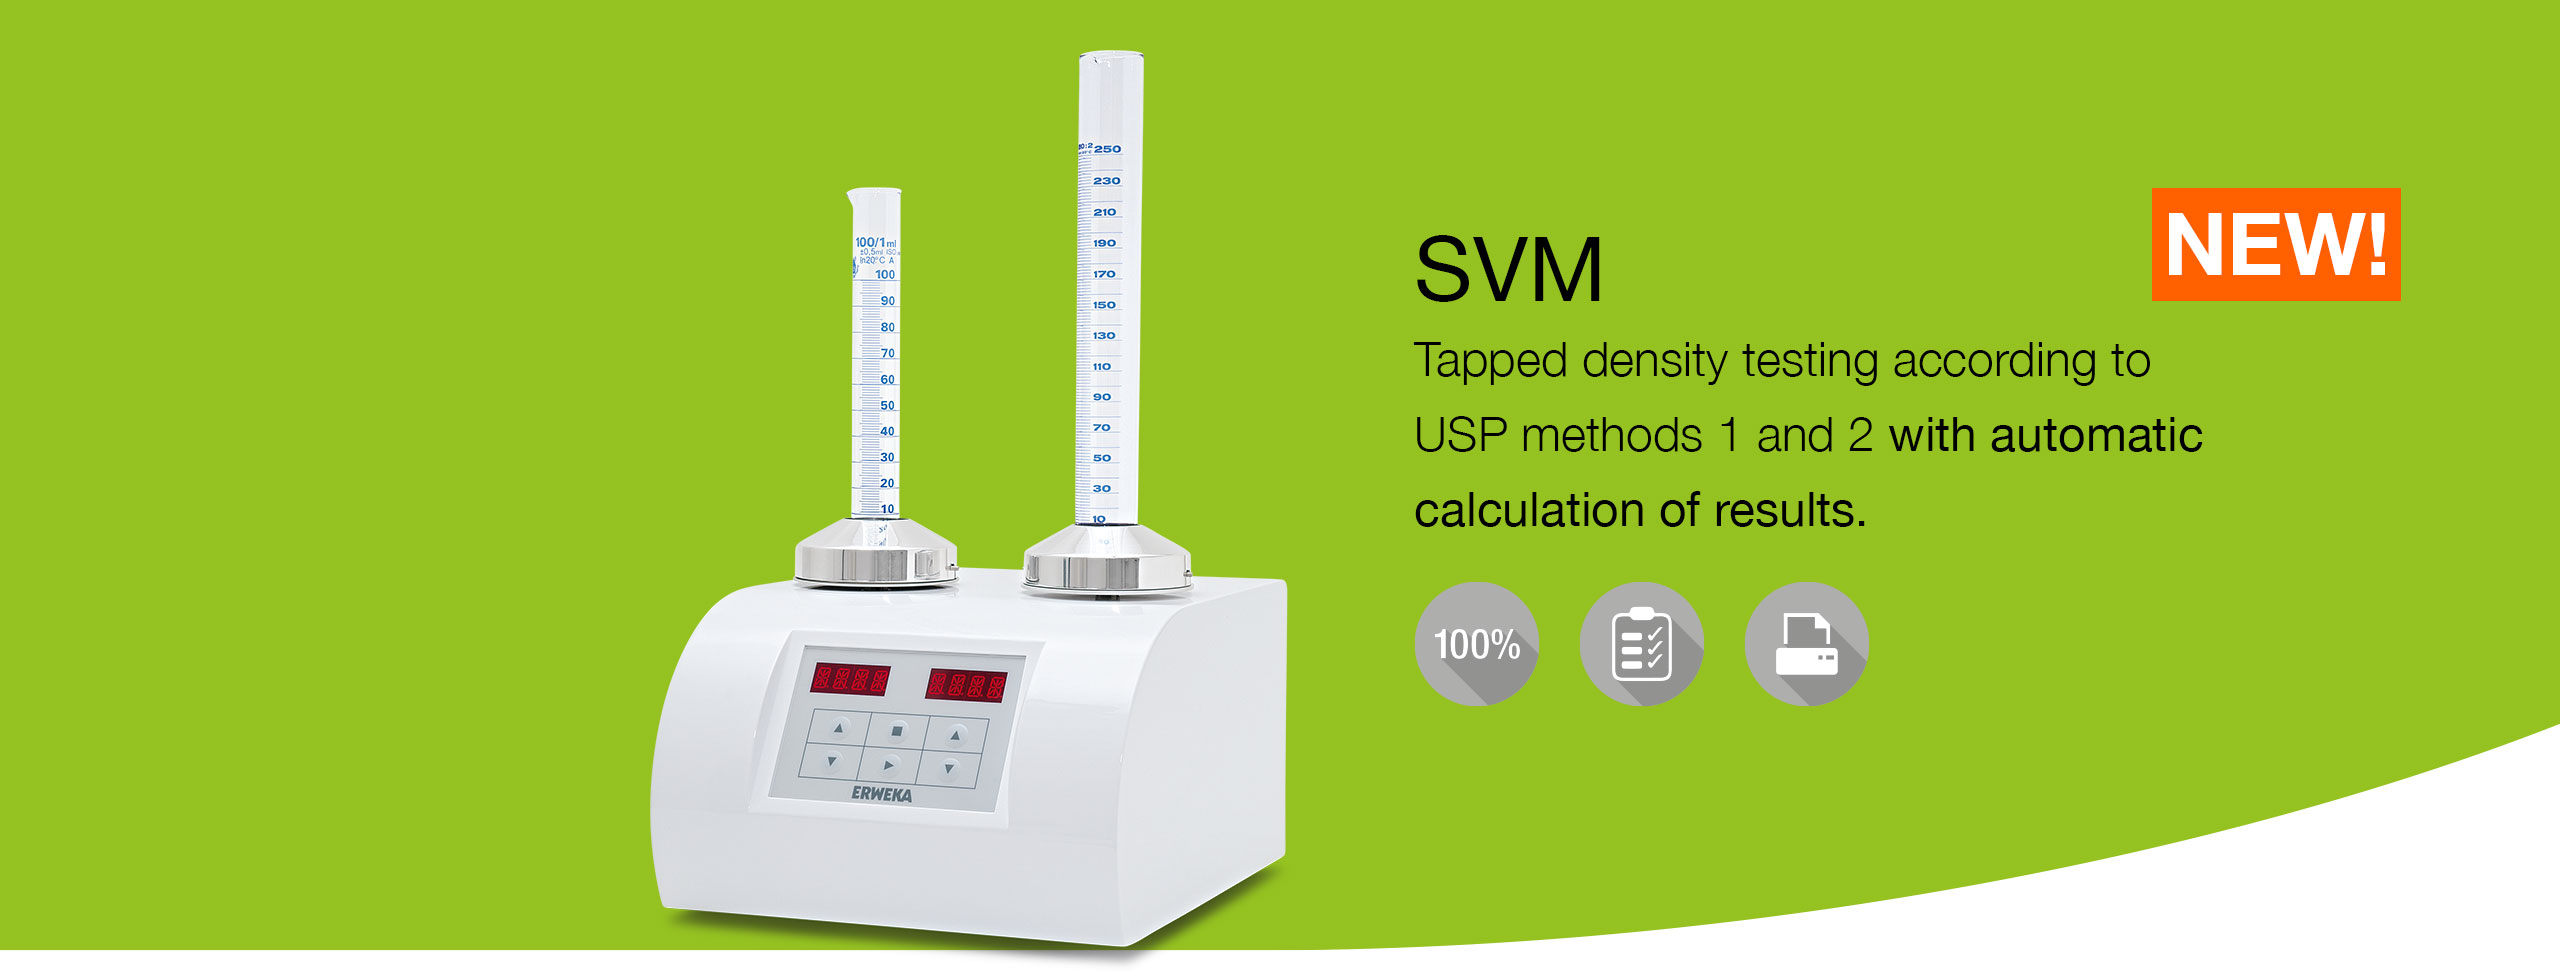 SVM Tapped density tester with automatic calculation of results